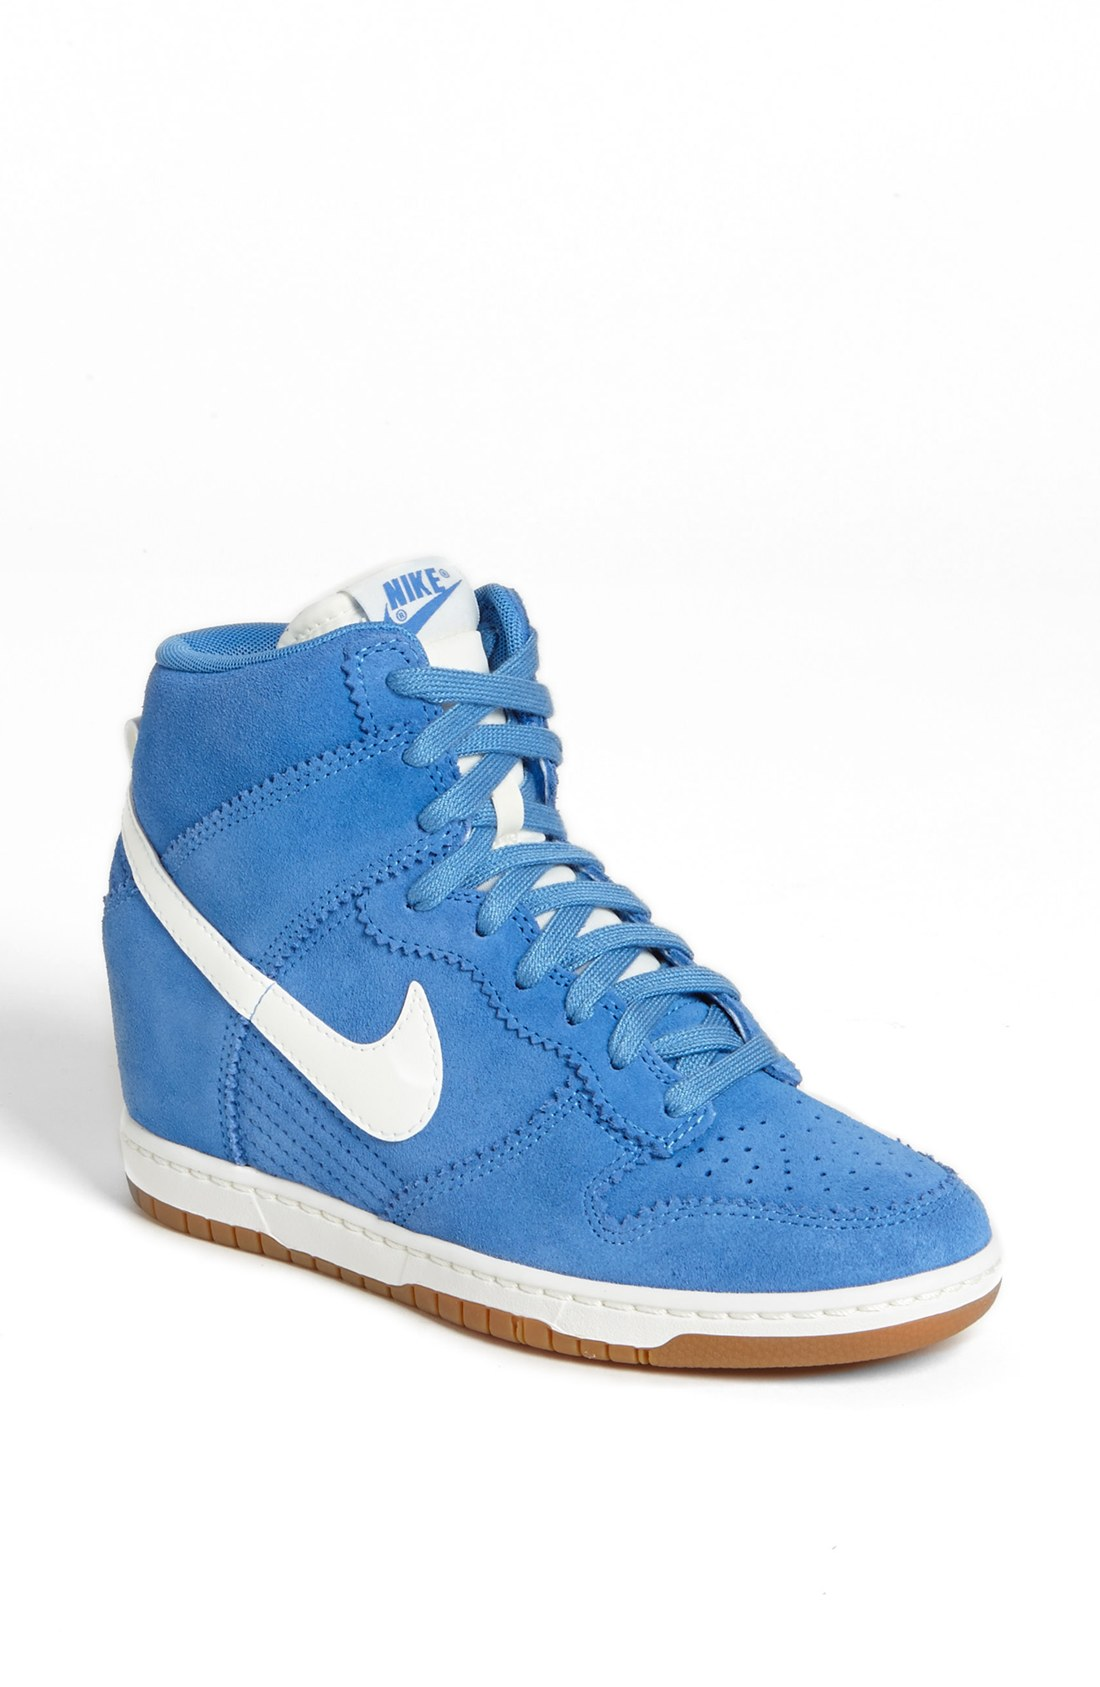 nike dunk sky hi wedge sneaker in blue distance blue white lyst. Black Bedroom Furniture Sets. Home Design Ideas